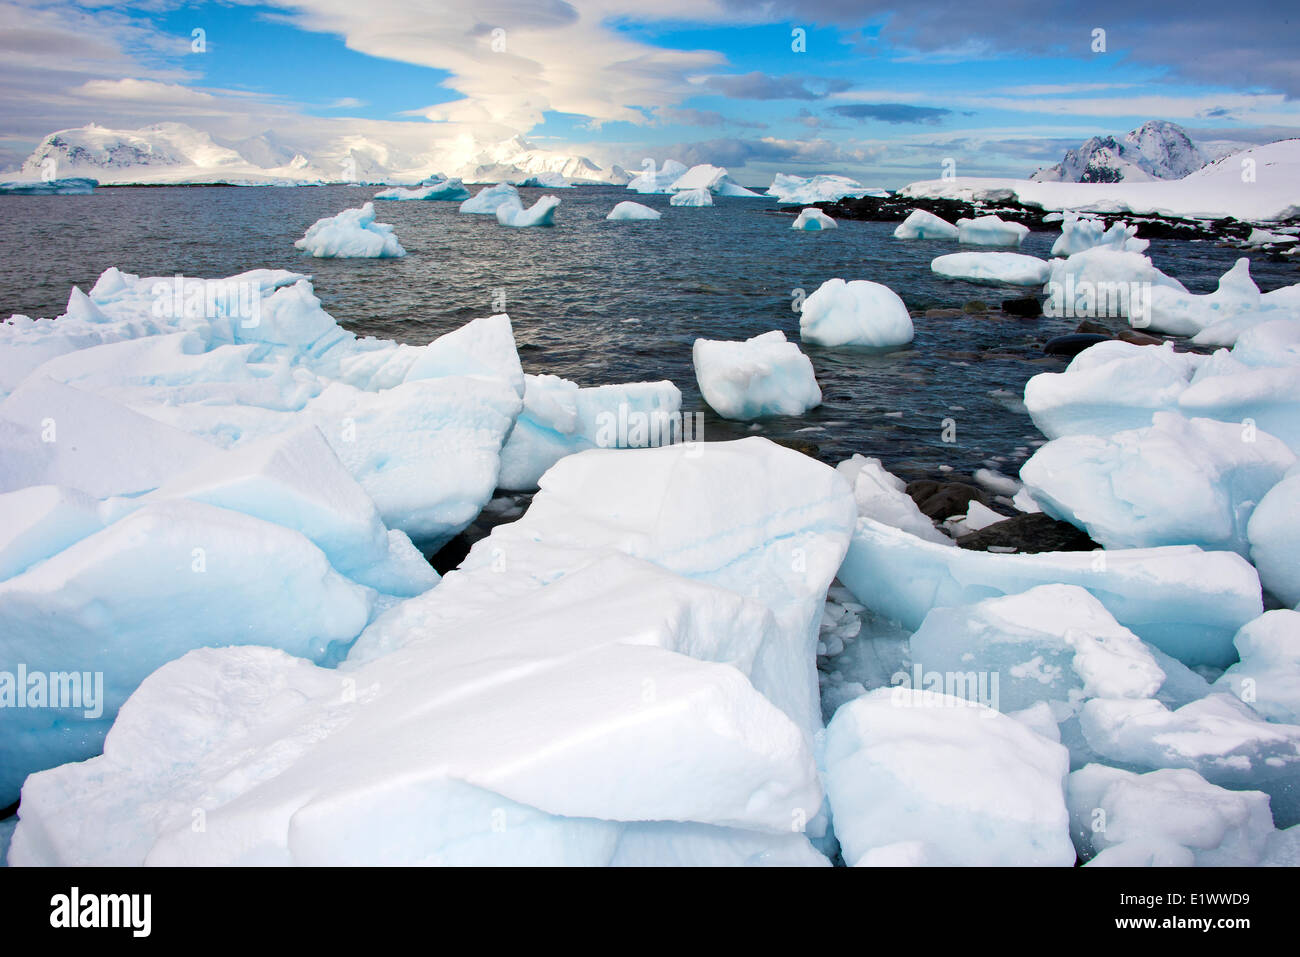 Orne Islands, Antarctic Peninsula - Stock Image